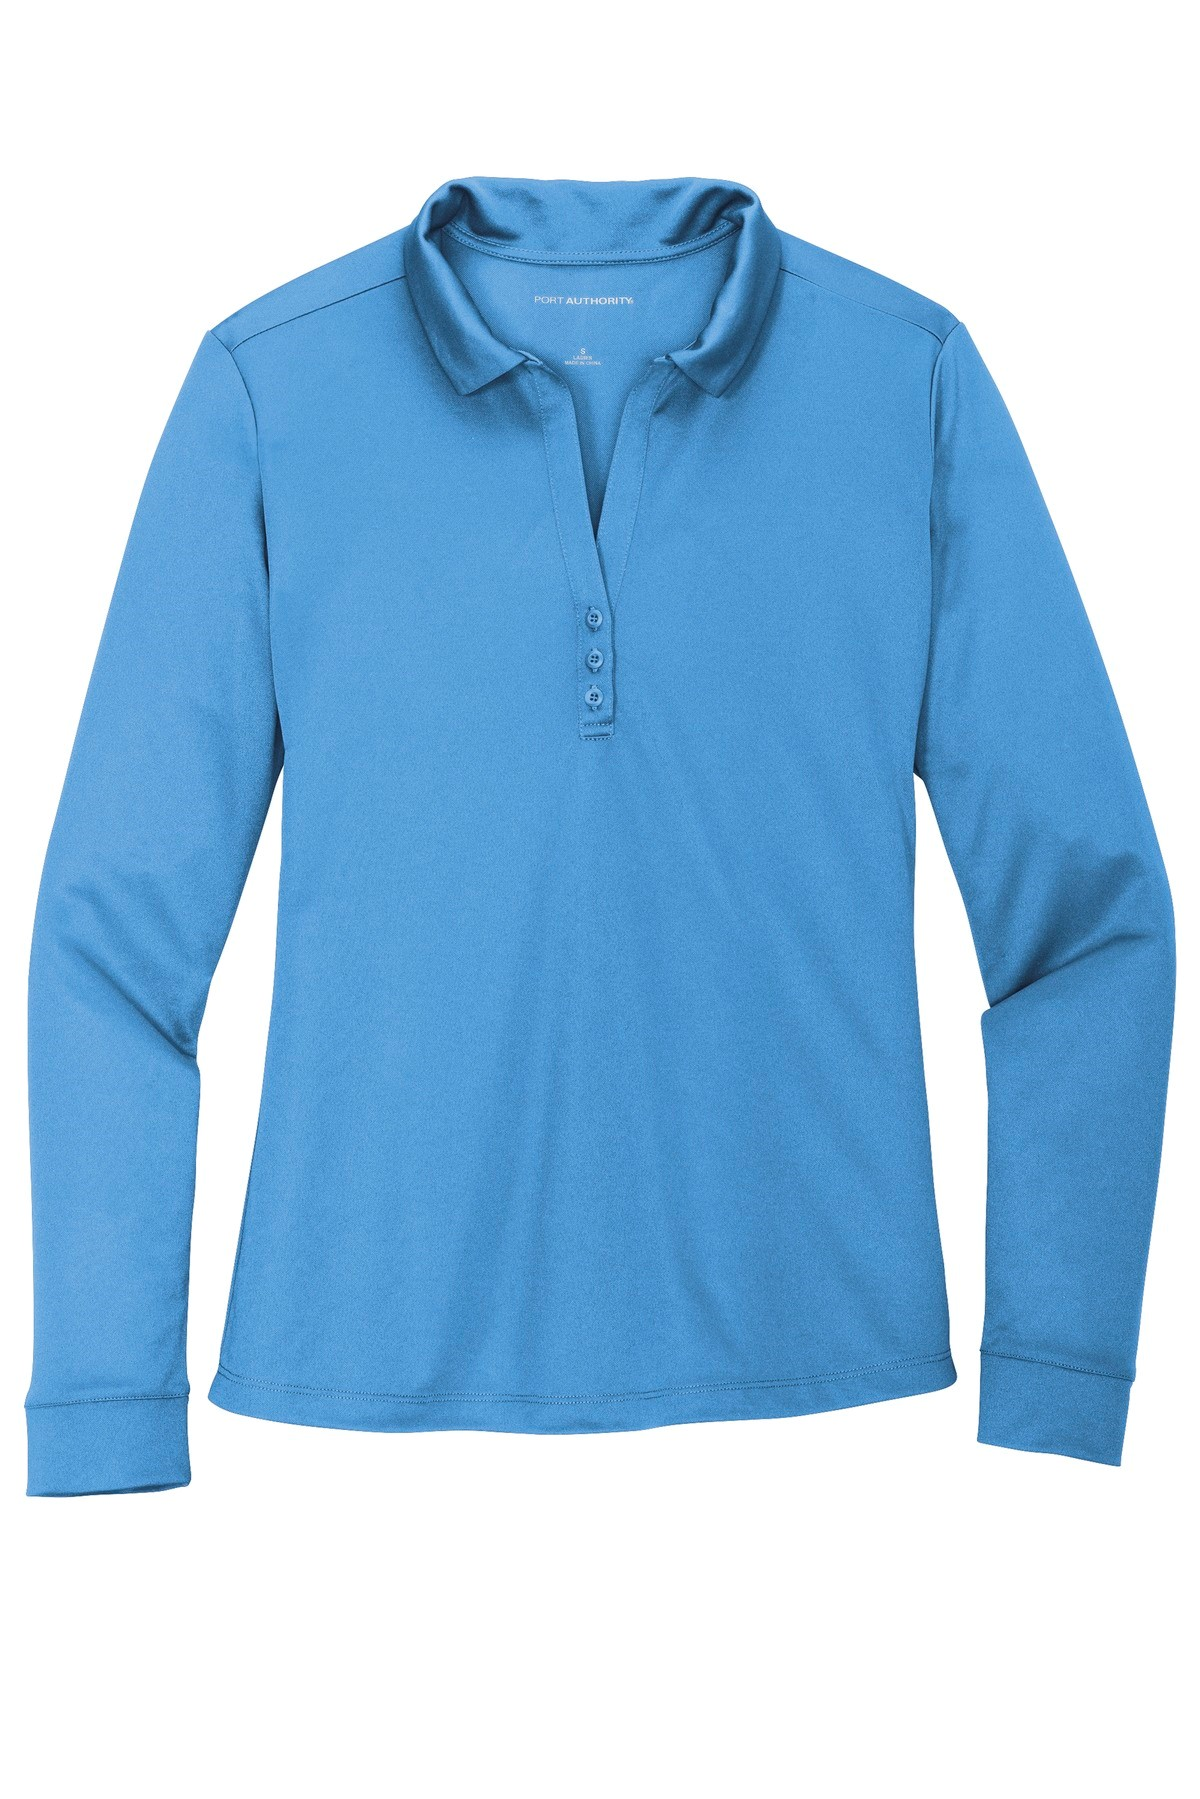 Ladies long sleeve moisture wicking polo L540LS